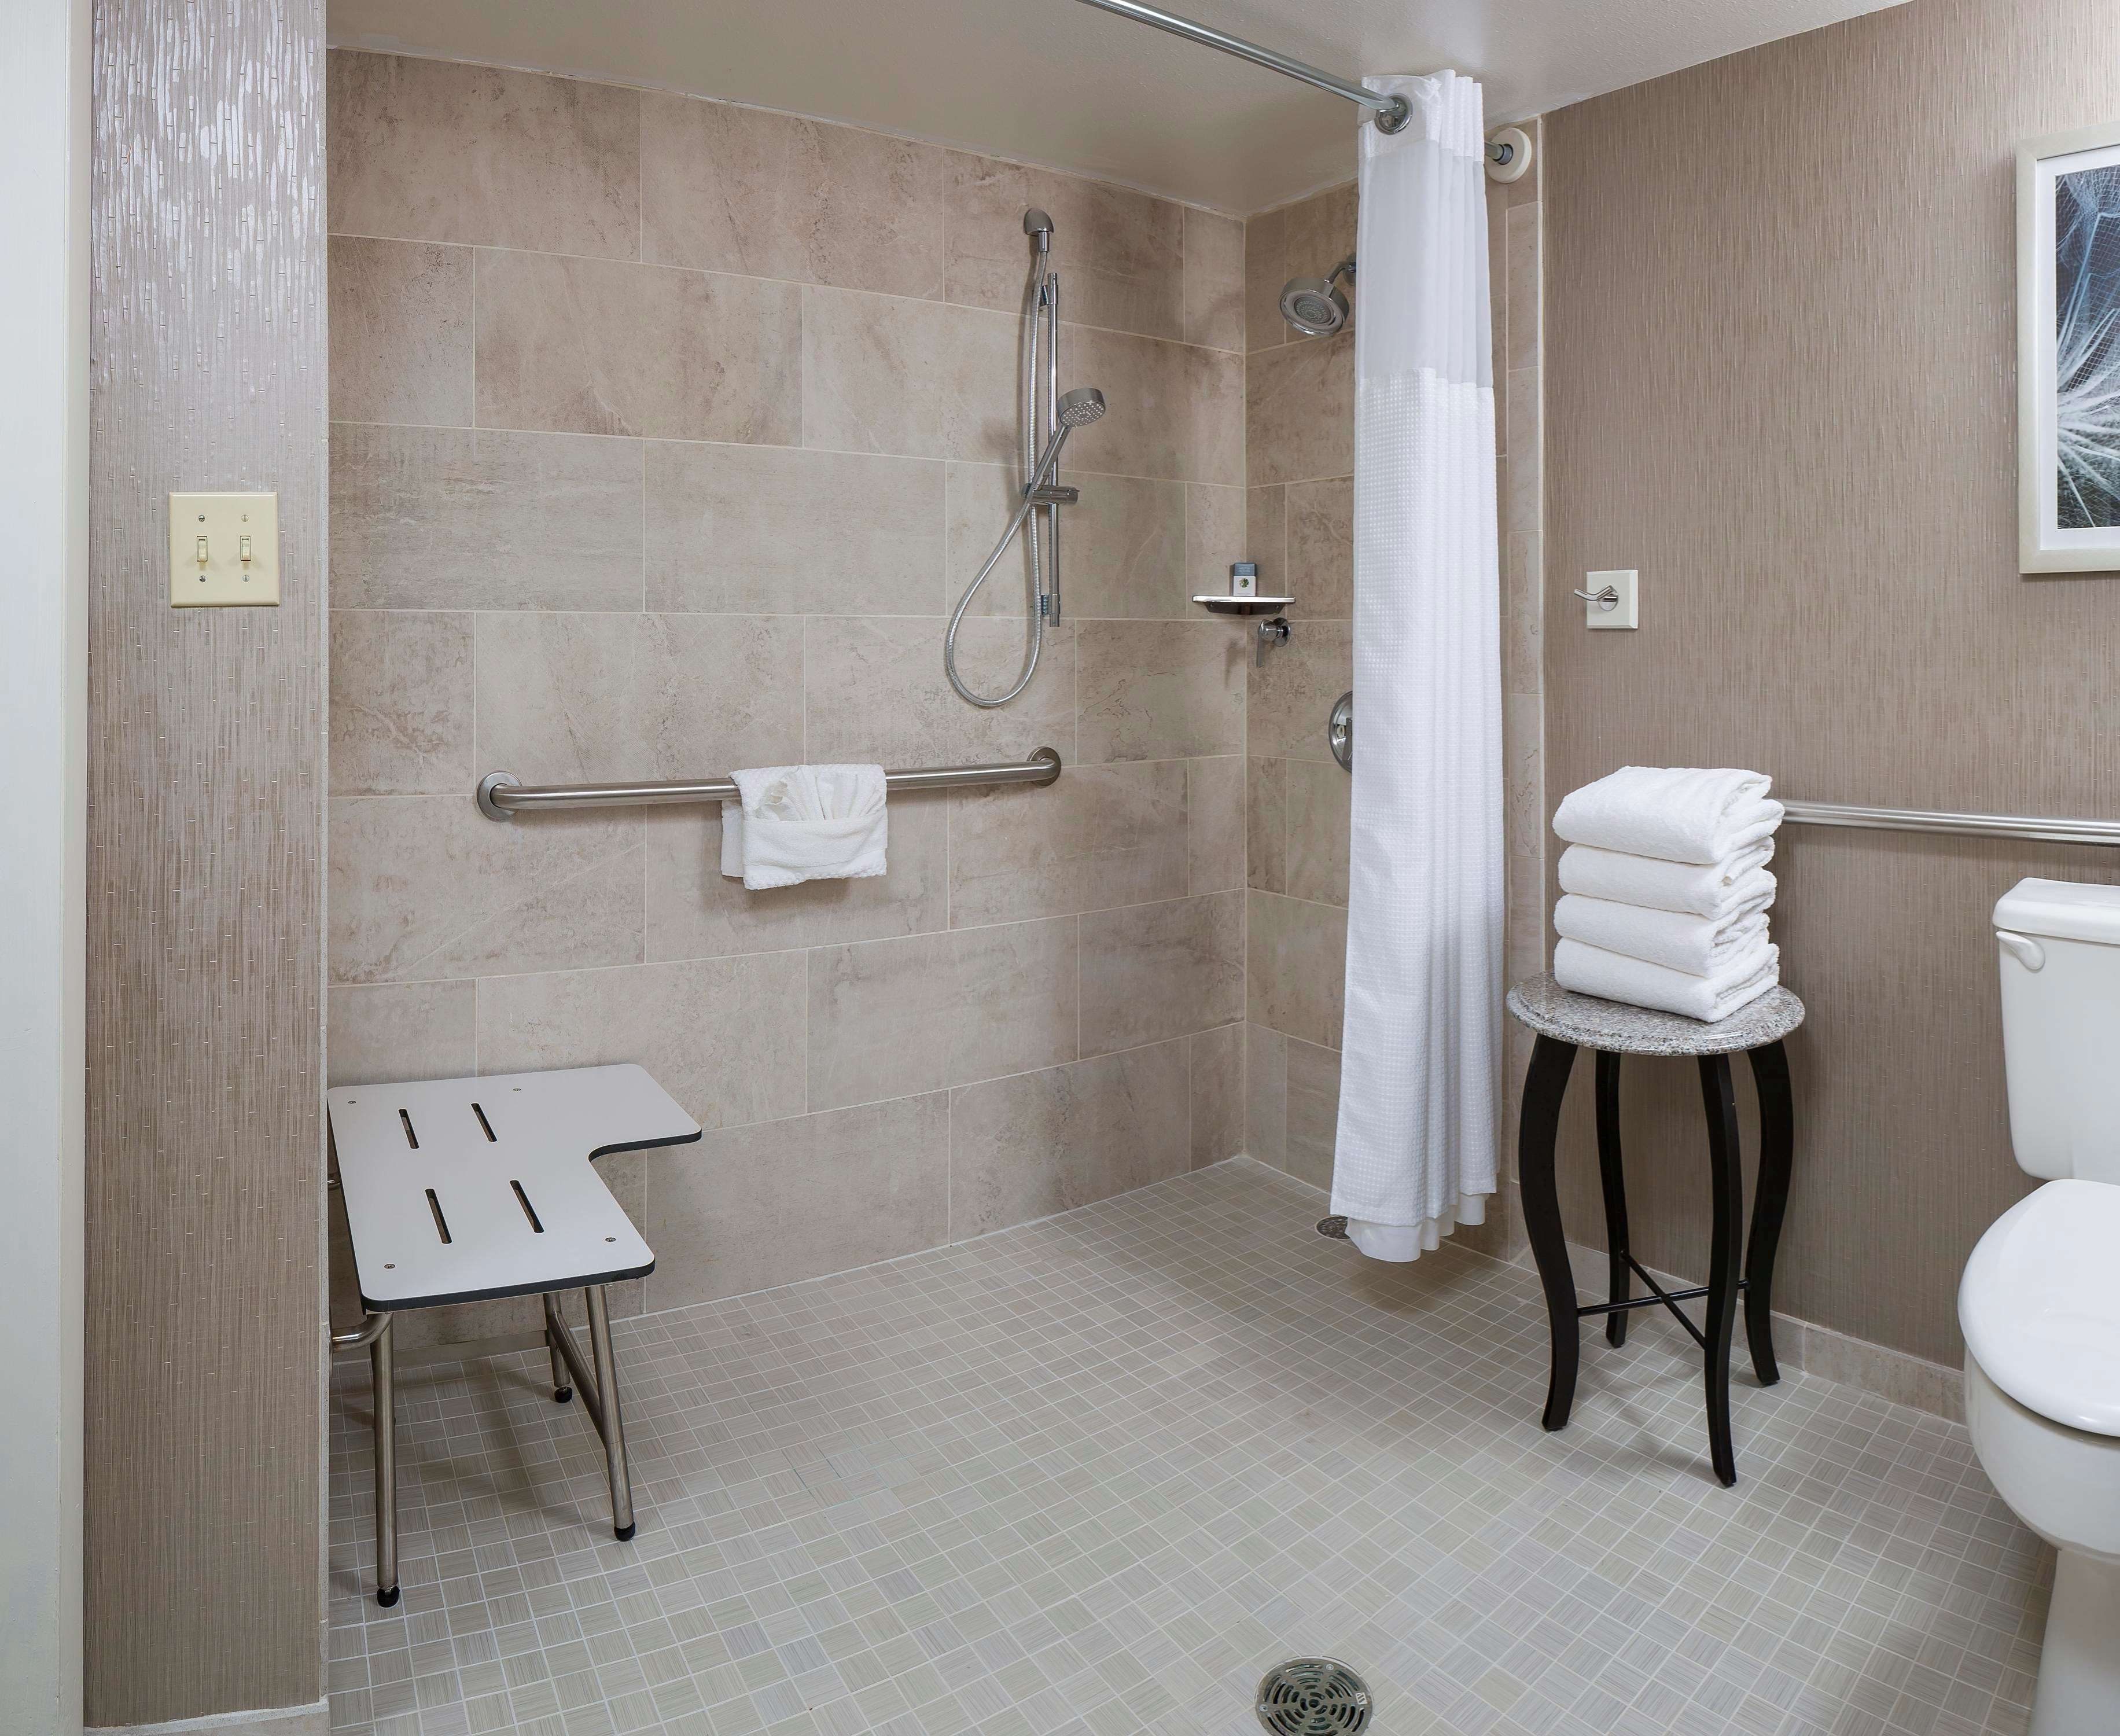 DoubleTree by Hilton Boston - Andover image 42